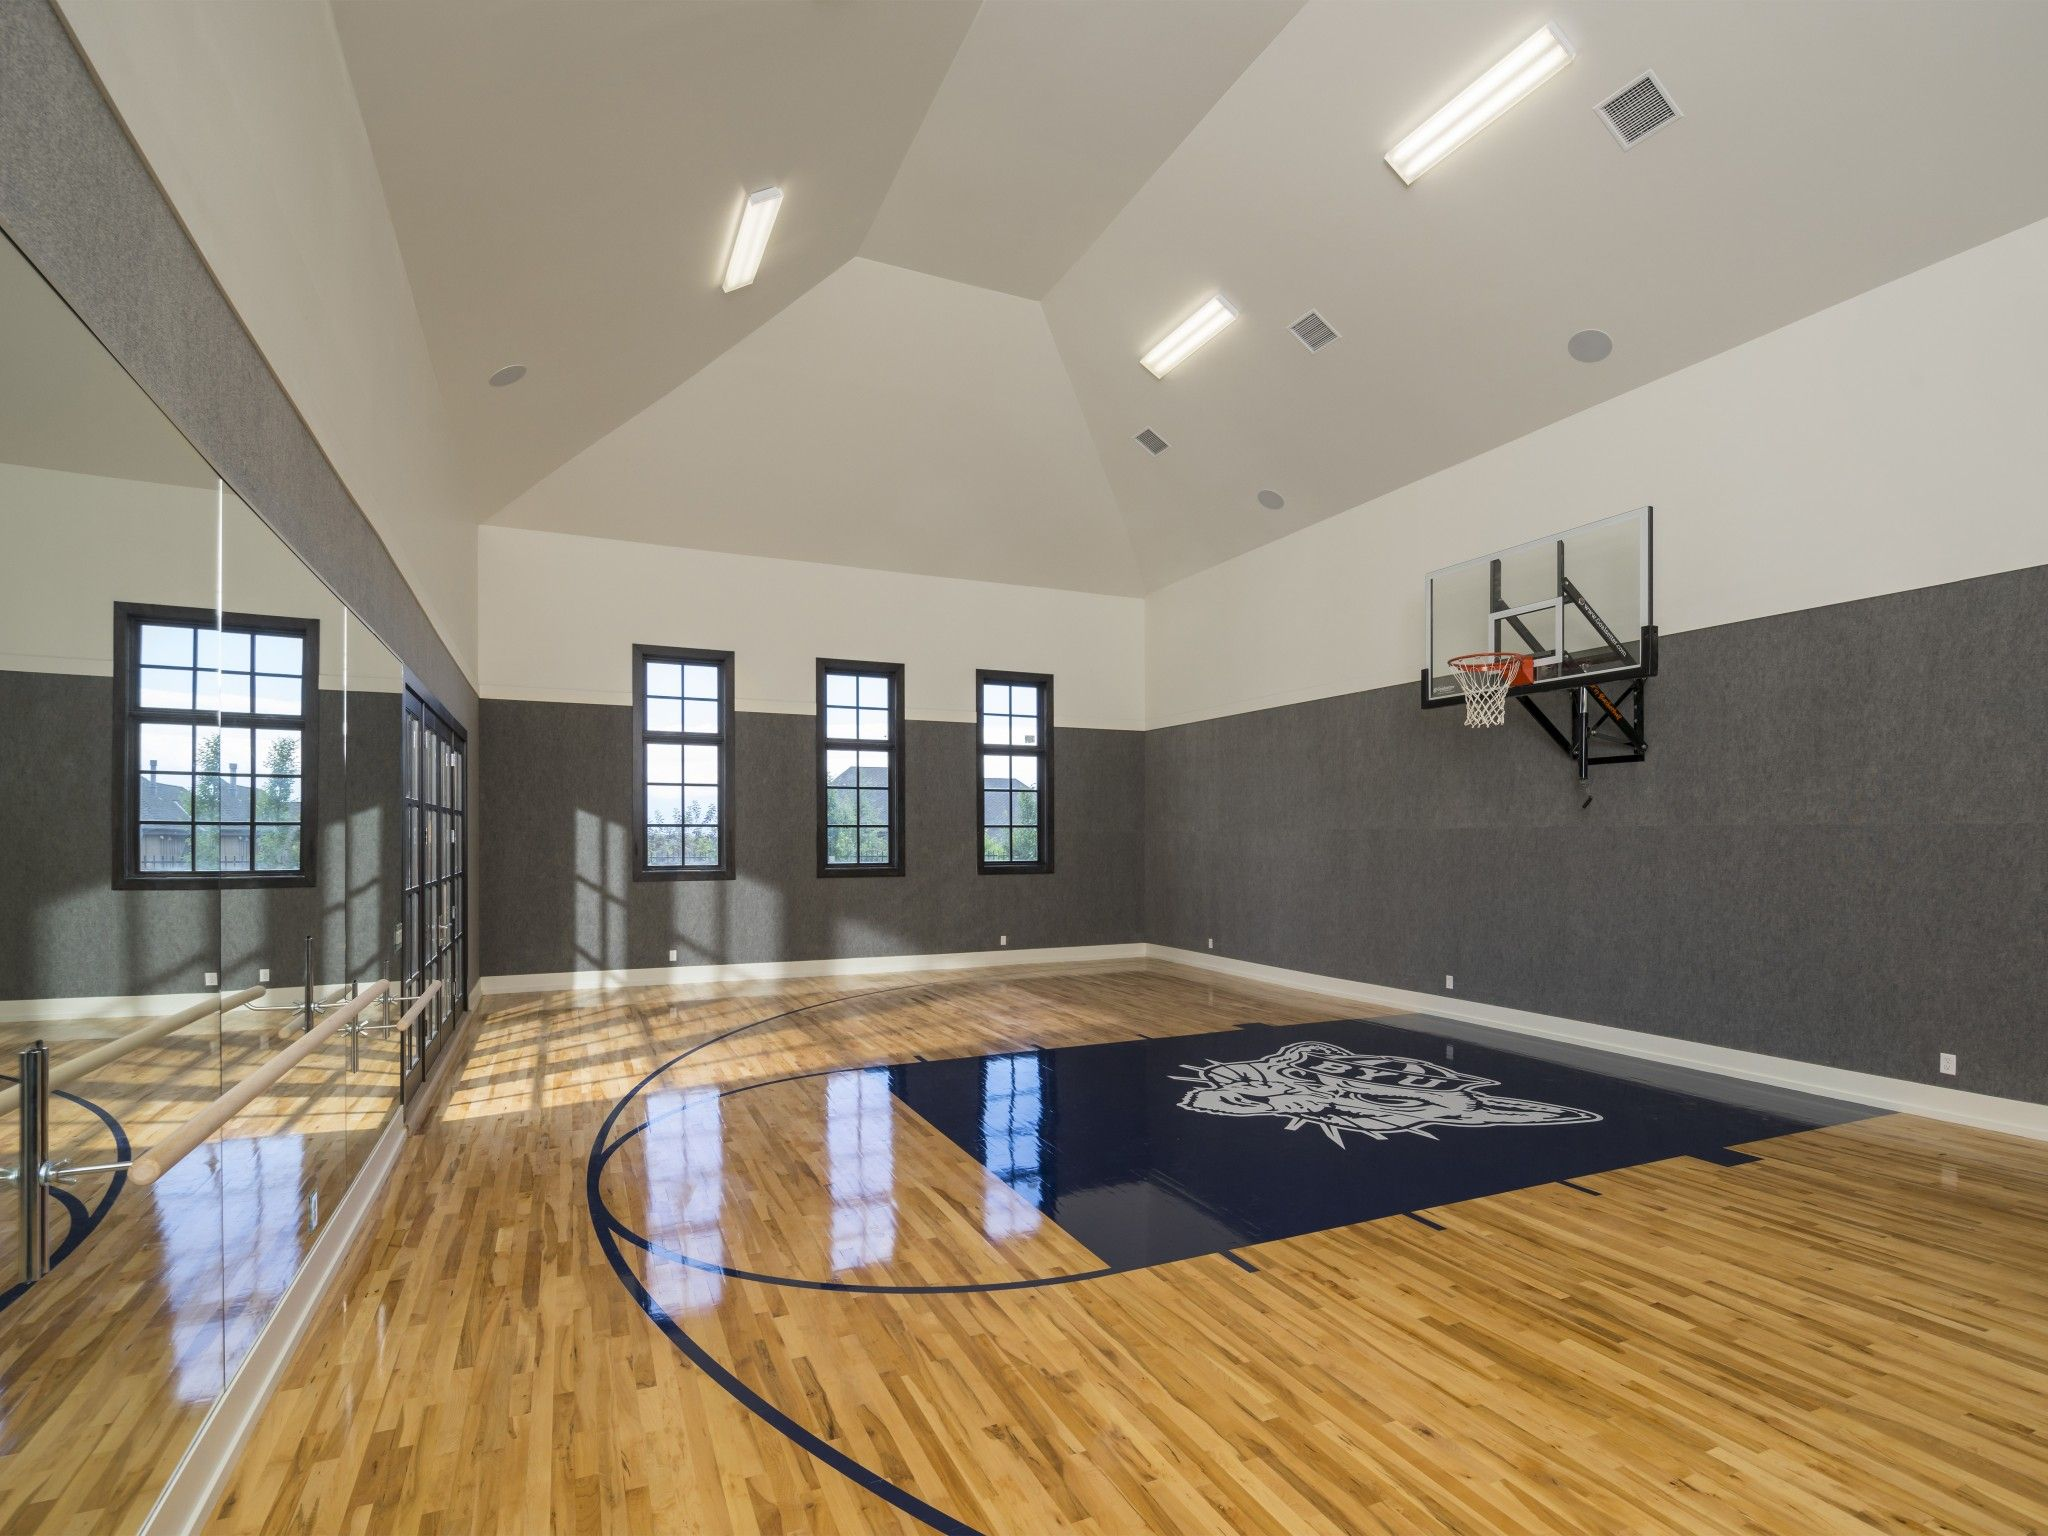 Sport Court Measuring 27' 44' In Lower Level Of